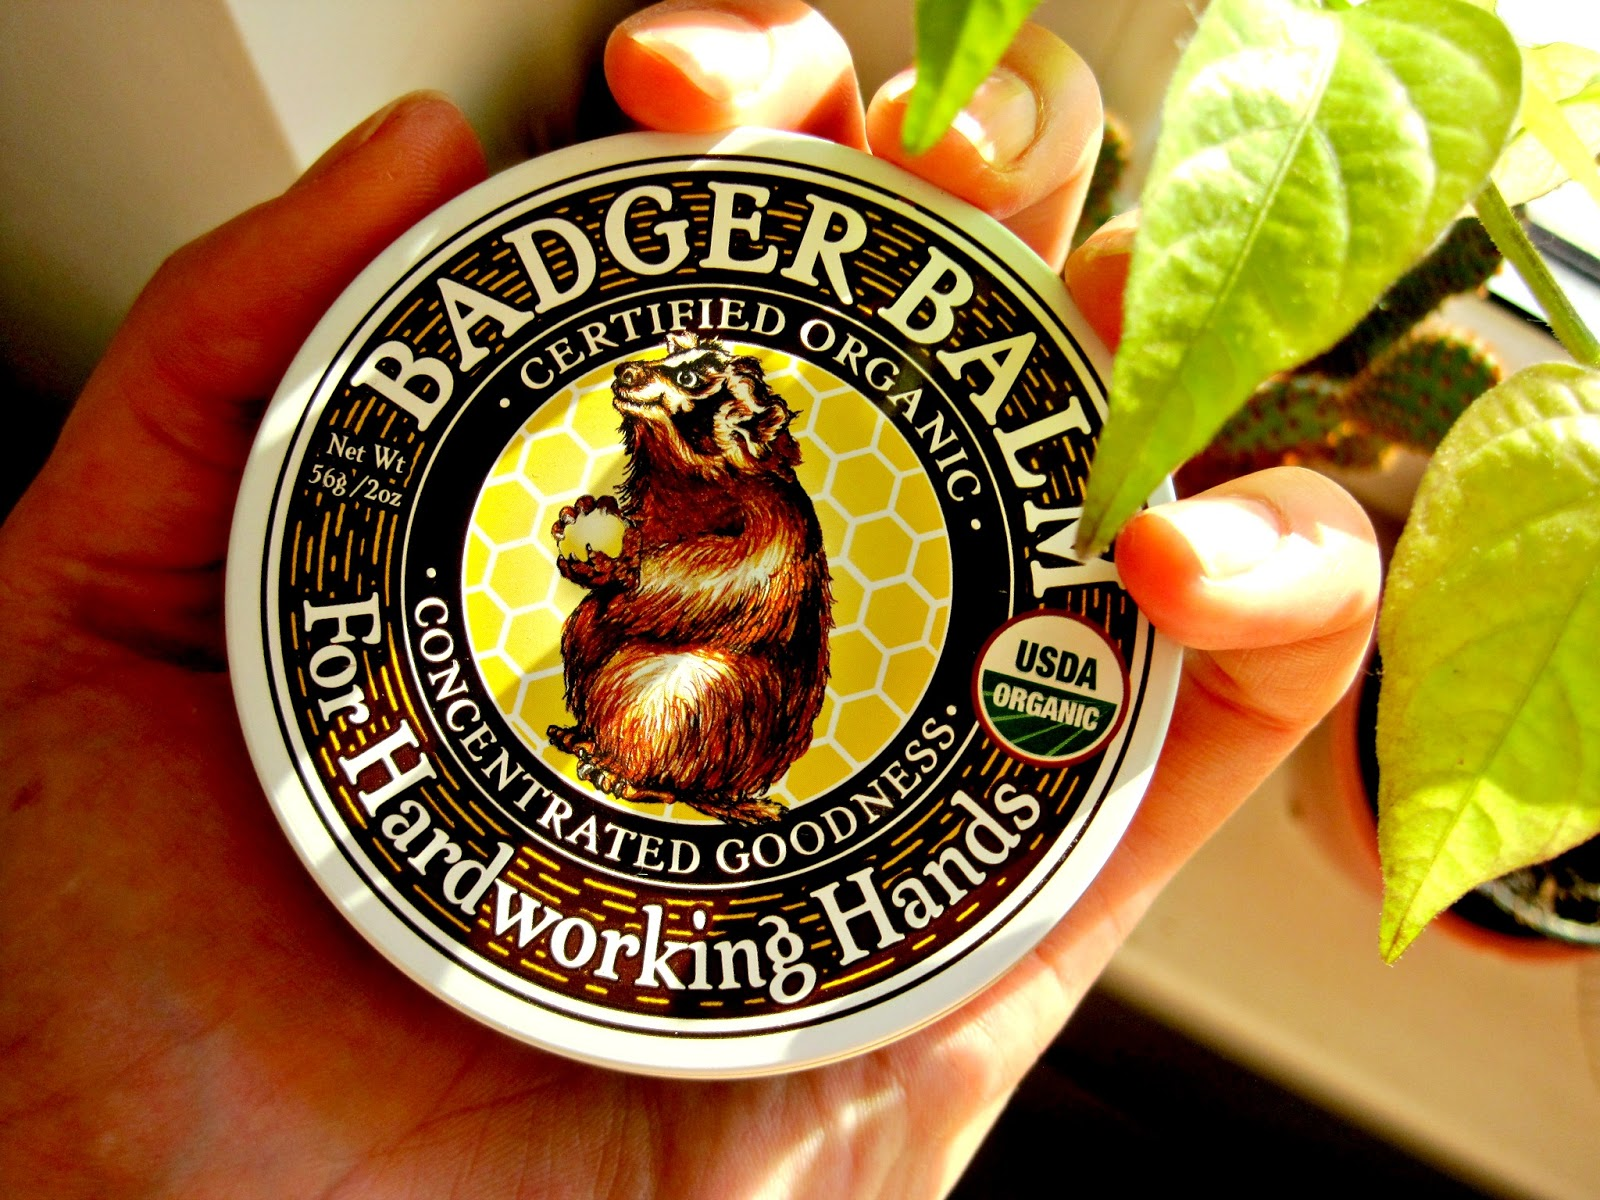 badger balm hands hardworking grail fastest addition holy company going am